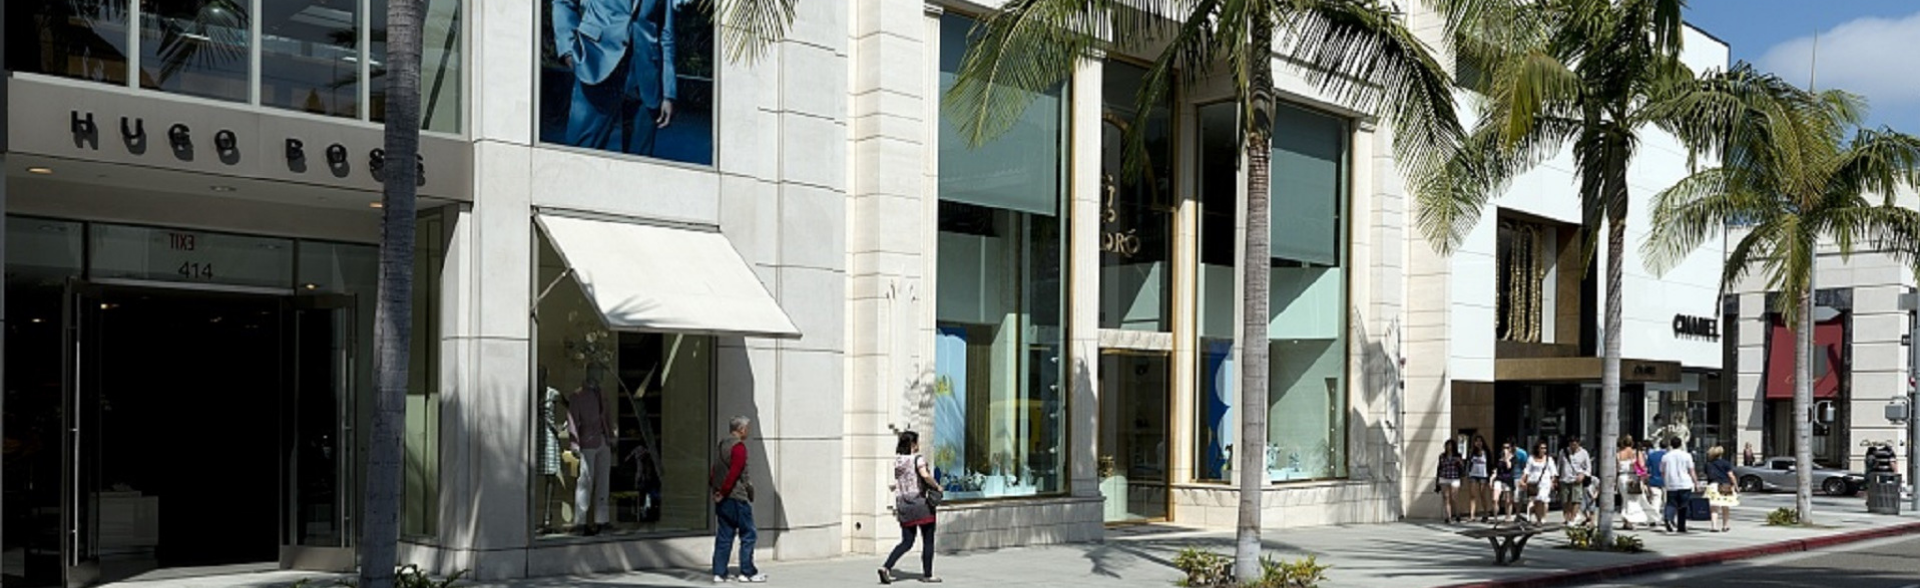 Rodeo Drive 1920x588